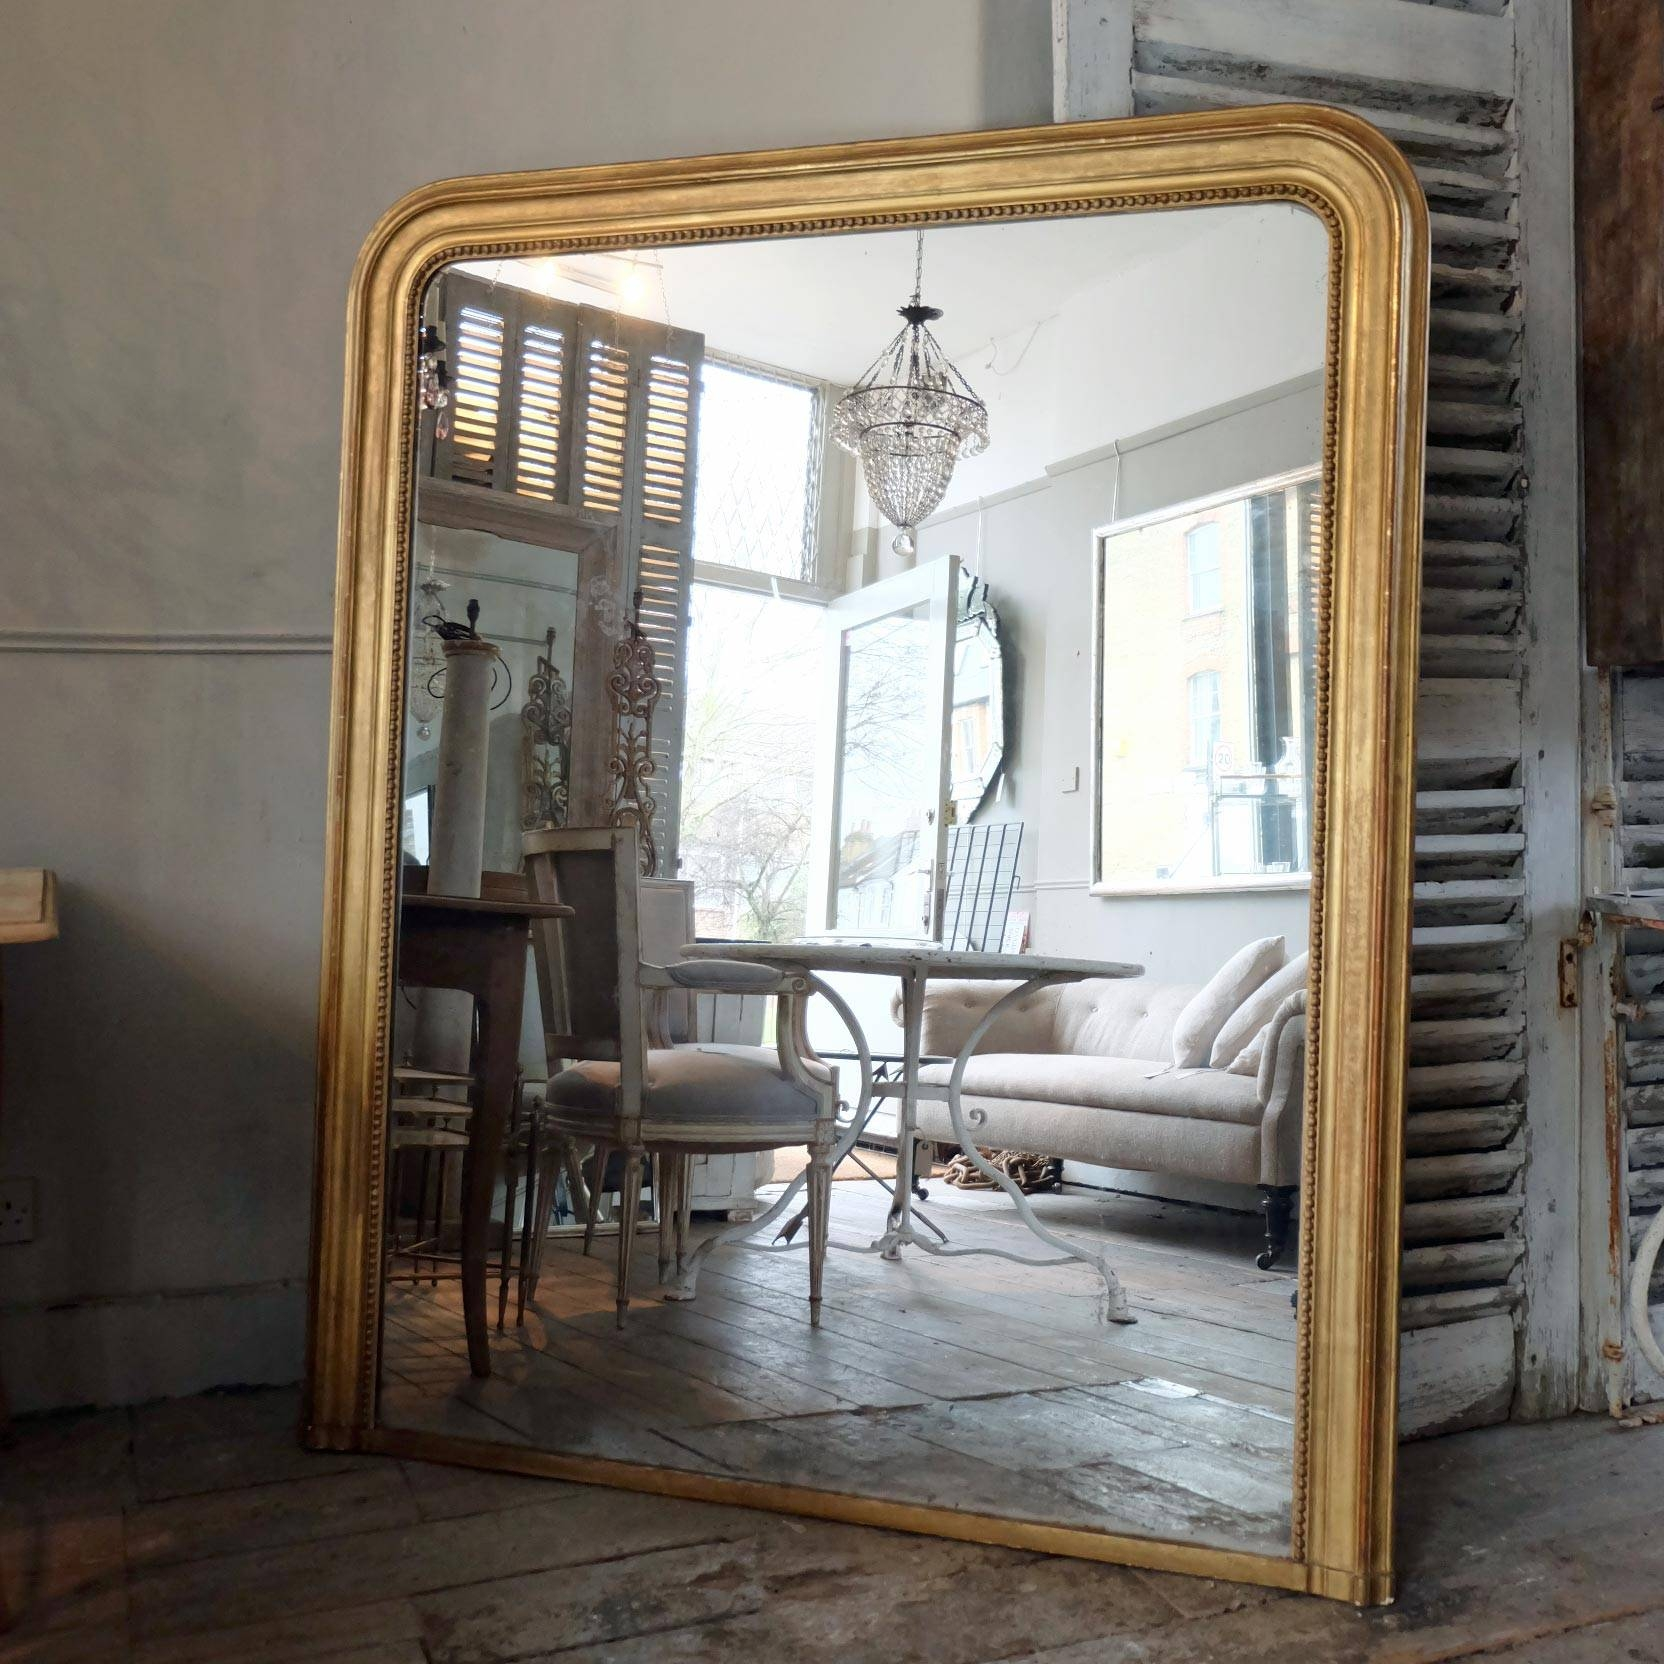 Large Antique Gilt Mirror › Puckhaber Decorative Antiques with regard to Antique Gilt Mirrors (Image 24 of 25)